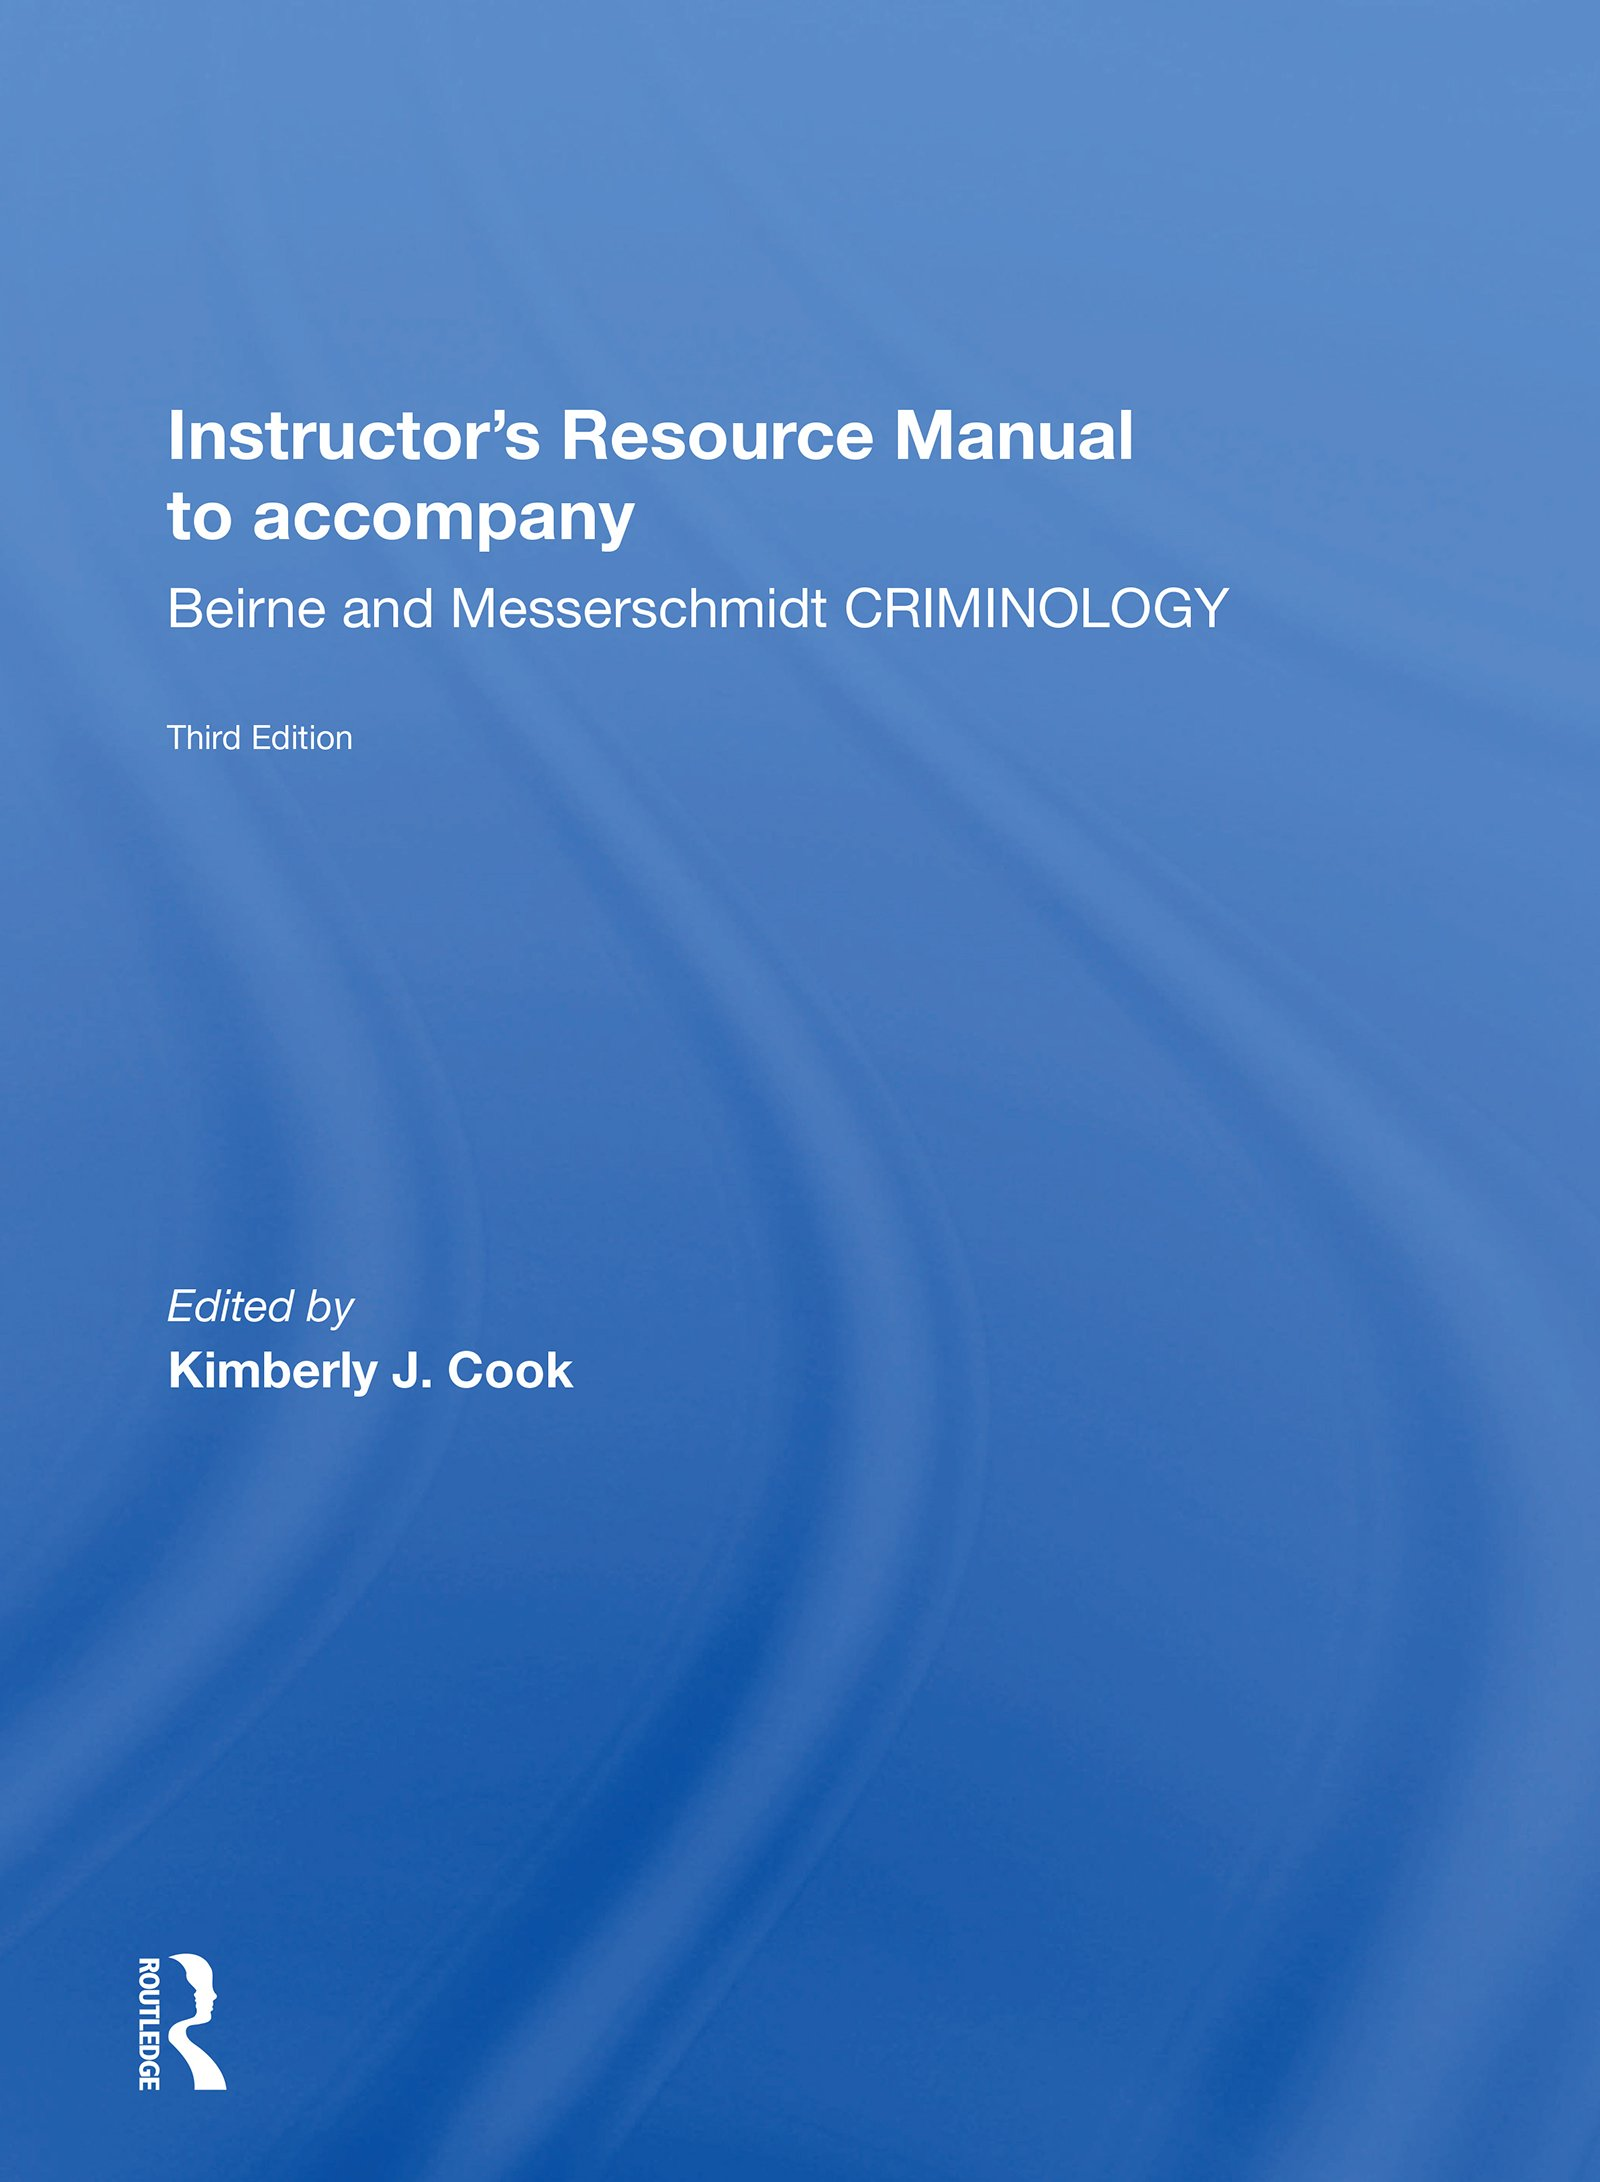 Instructor's Manual To Accompany Criminology